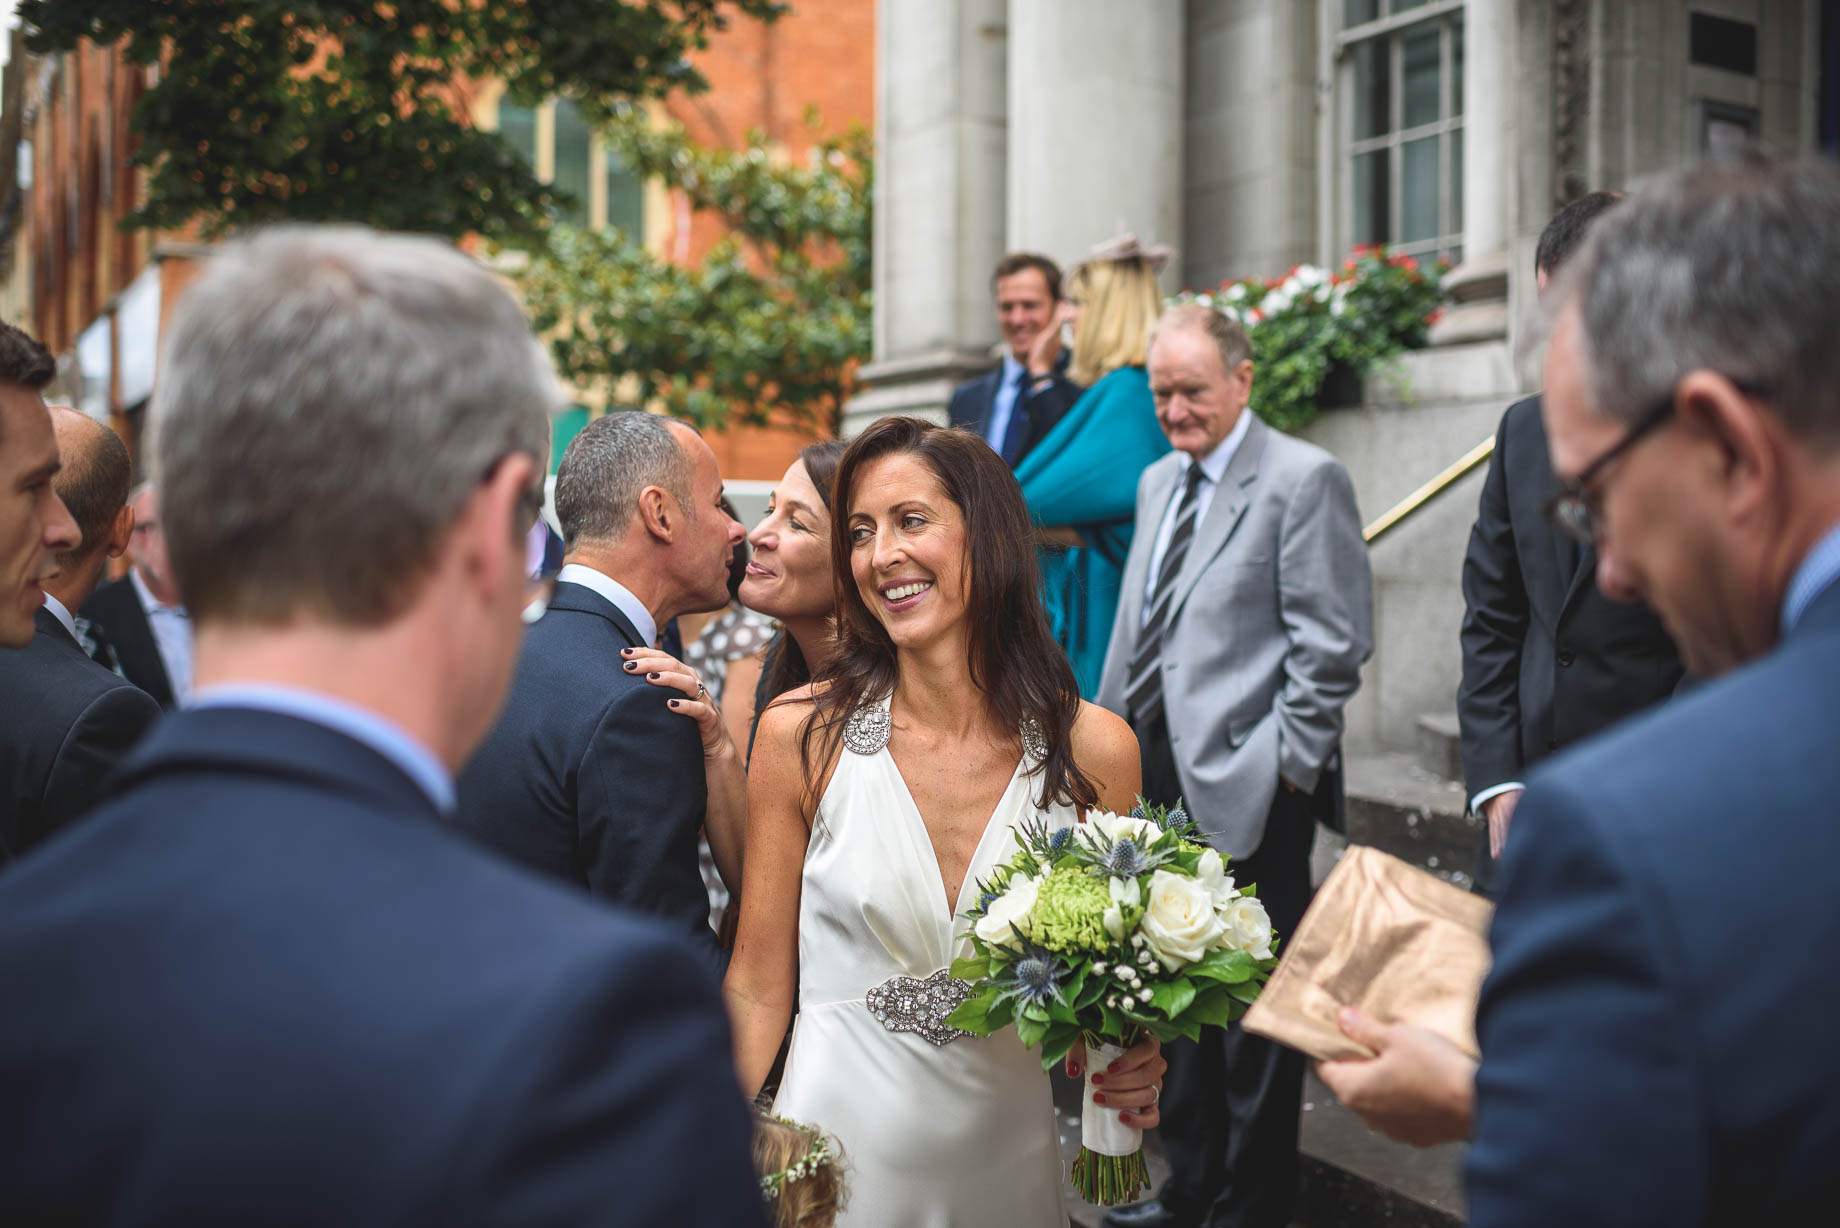 Chelsea and Mayfair wedding photography - Guy Collier - Vicki and Damien (72 of 126)